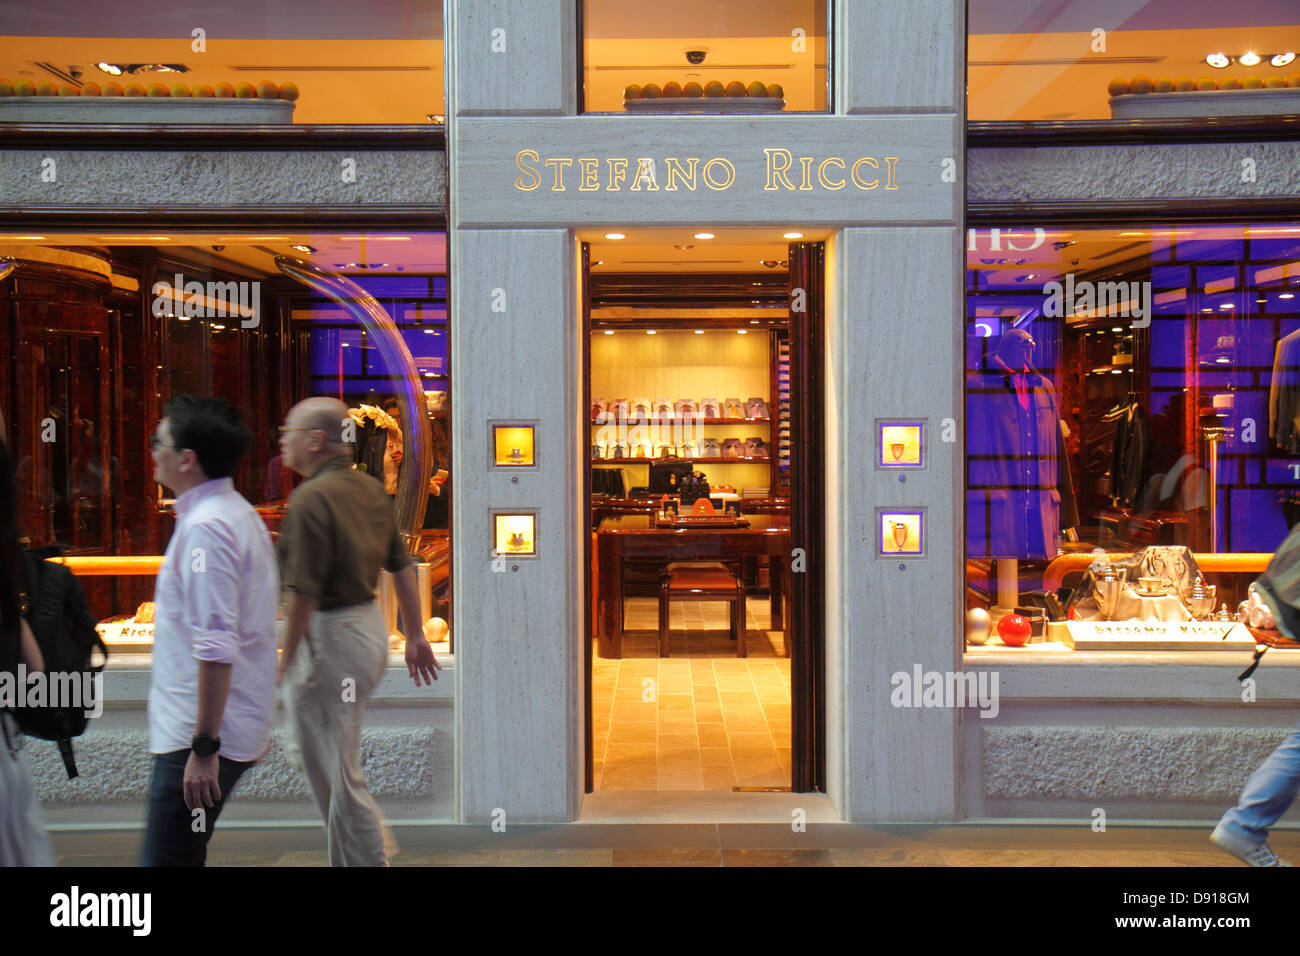 Singapore The Shoppes at Marina Bay Sands shops shopping front entrance Stefano Ricci men's clothing Stock Photo